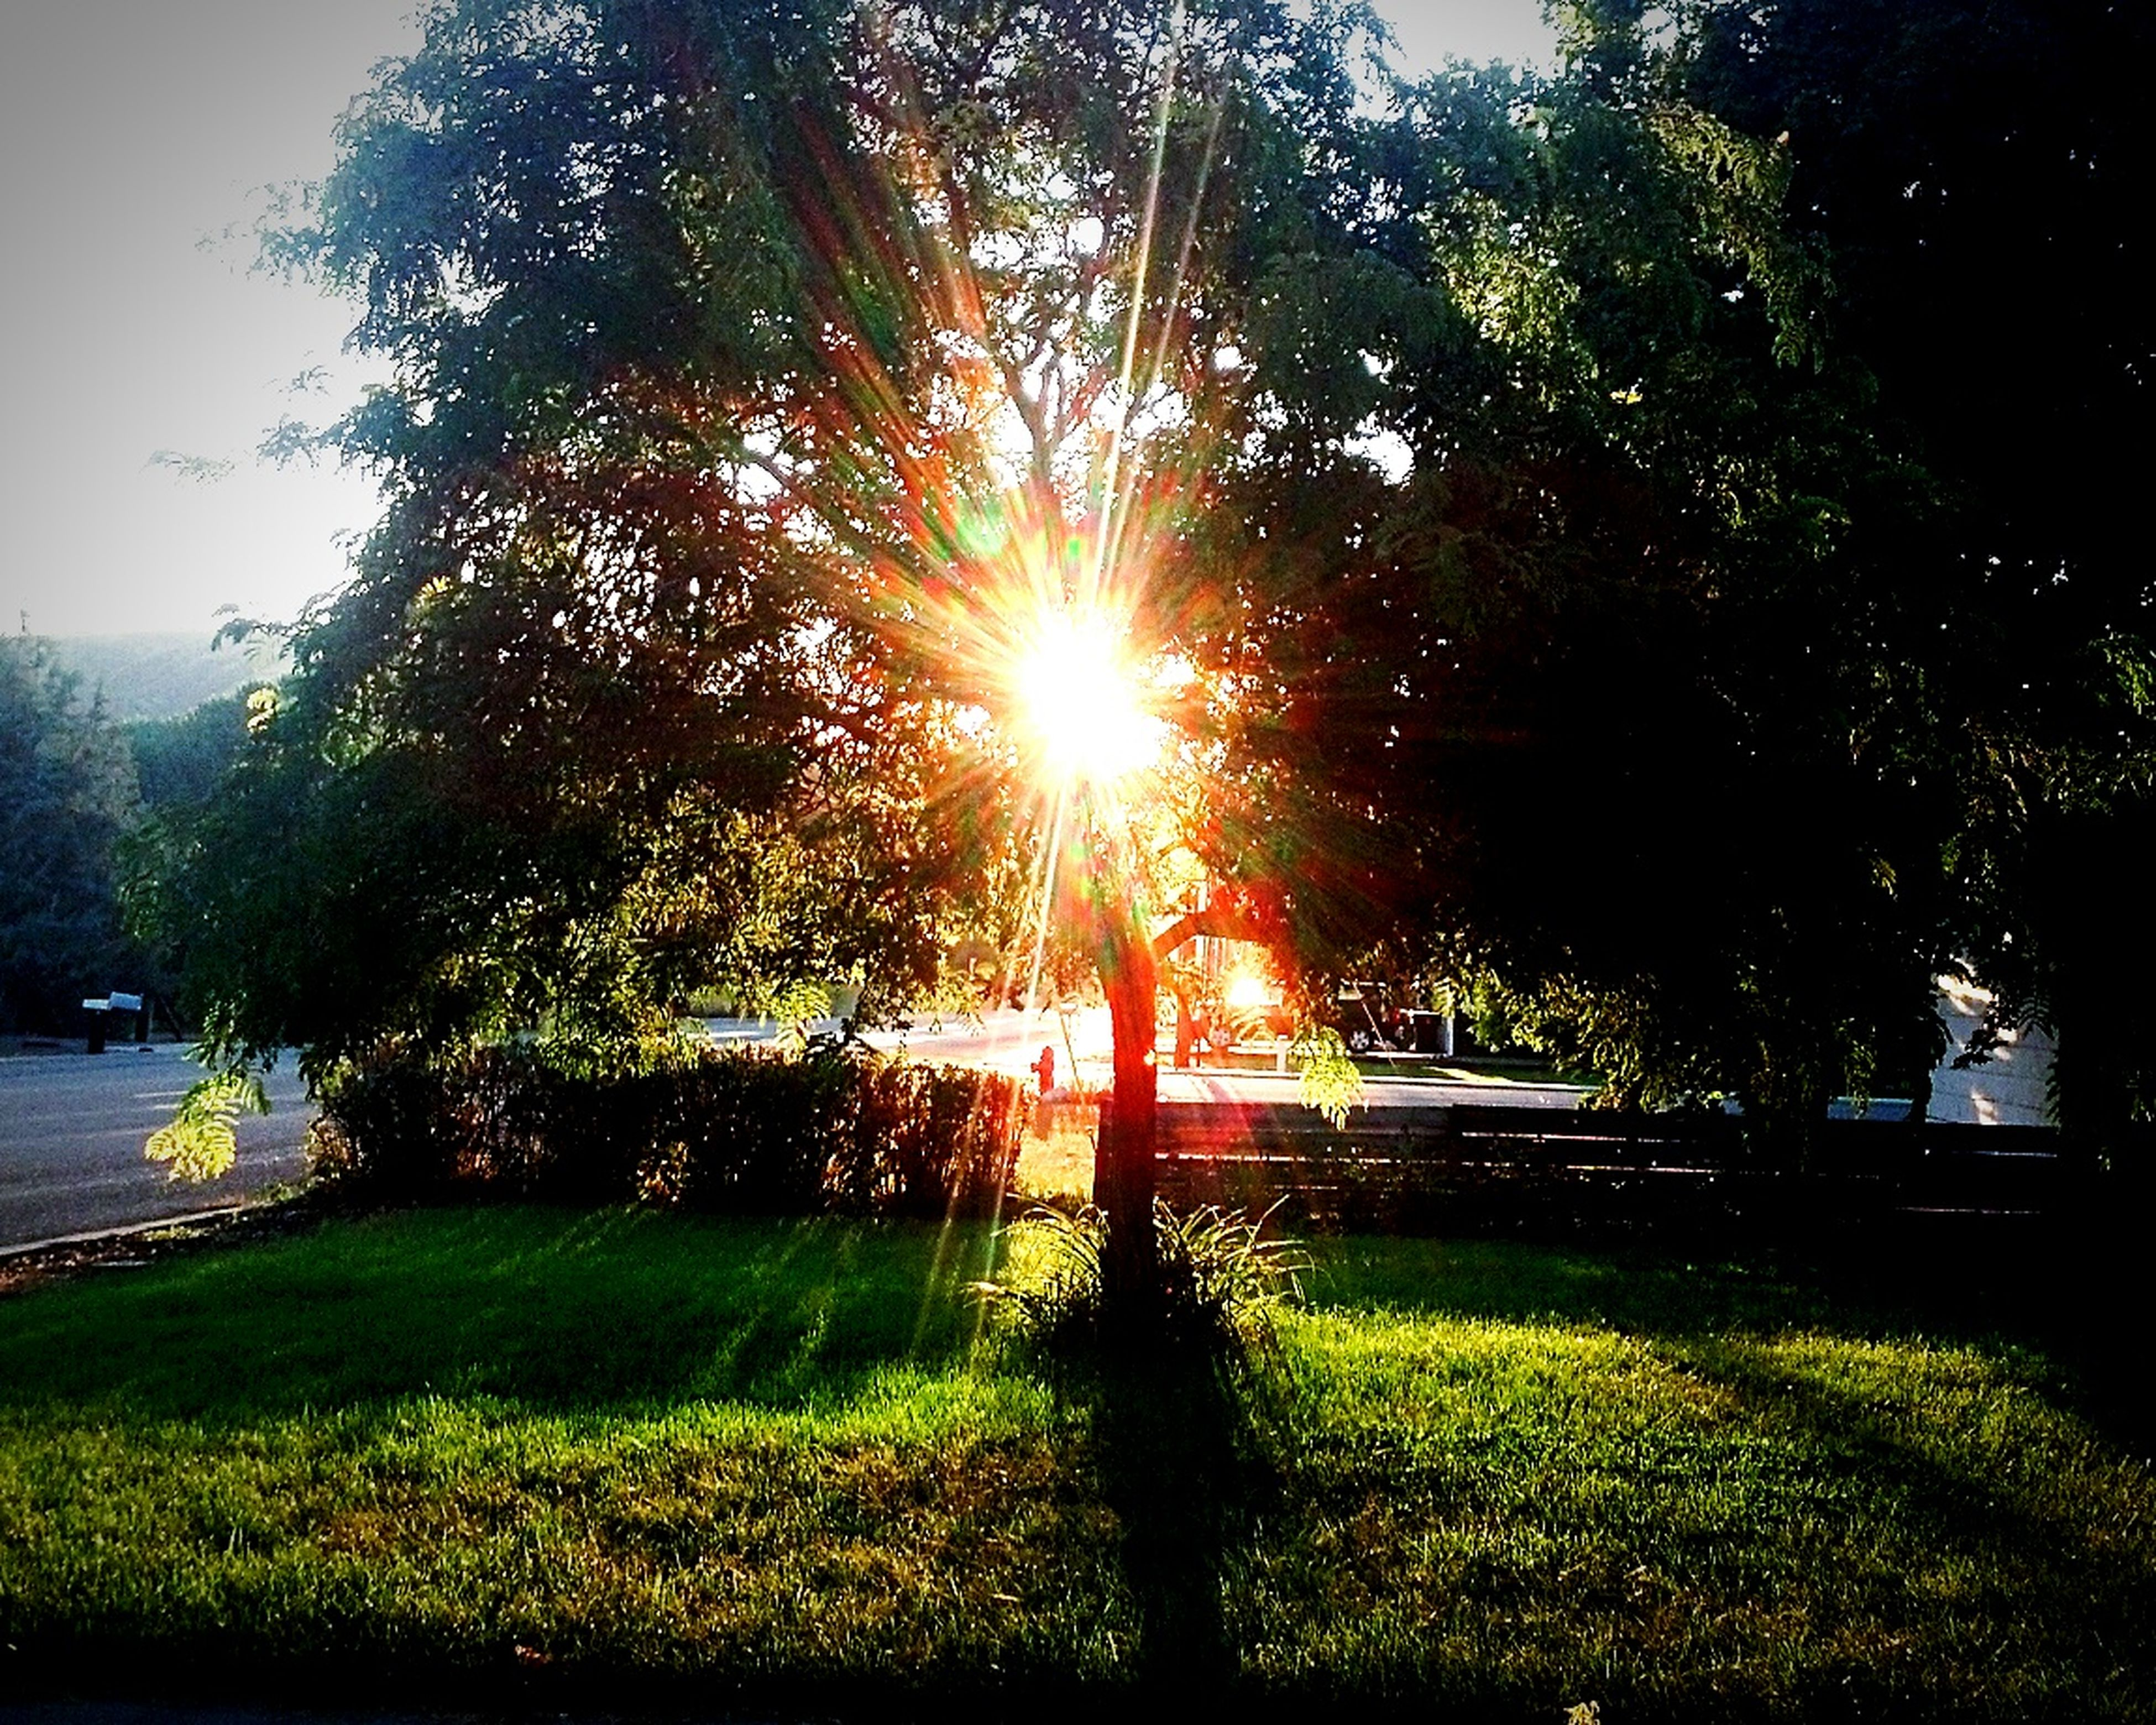 tree, sun, sunlight, growth, sunbeam, grass, lens flare, tranquility, park - man made space, nature, plant, green color, beauty in nature, tranquil scene, branch, no people, sunny, clear sky, scenics, outdoors